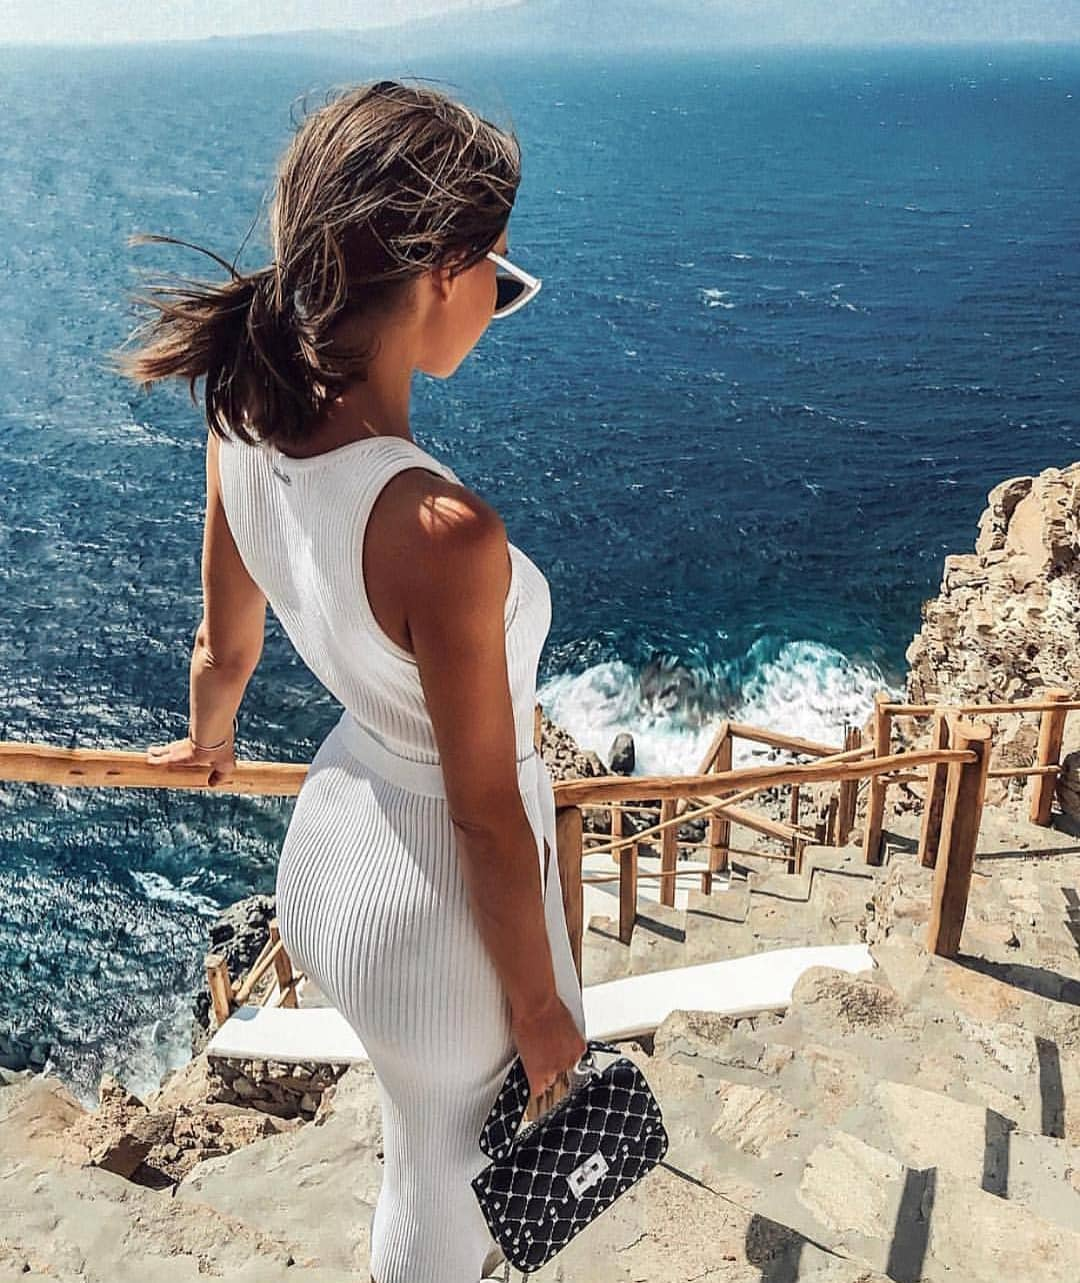 White Sleeveless Knitted Dress For Summer Trips 2020